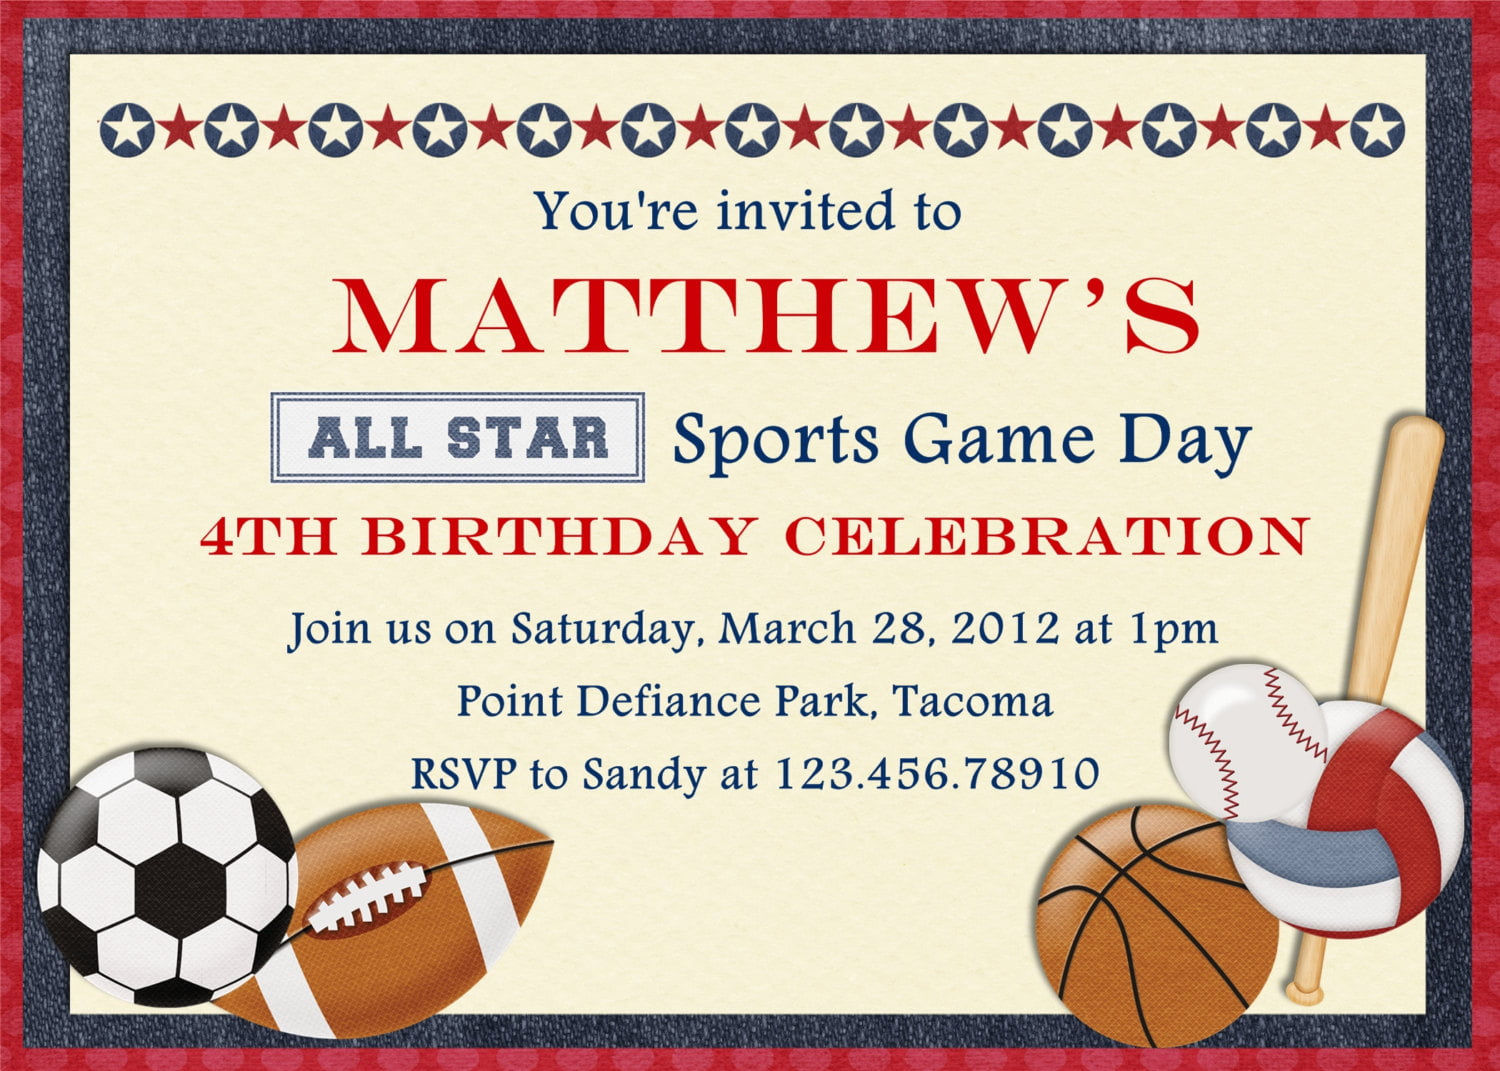 Free printable sports birthday invitations drevio invitations design free printable sports birthday invitations card filmwisefo Image collections